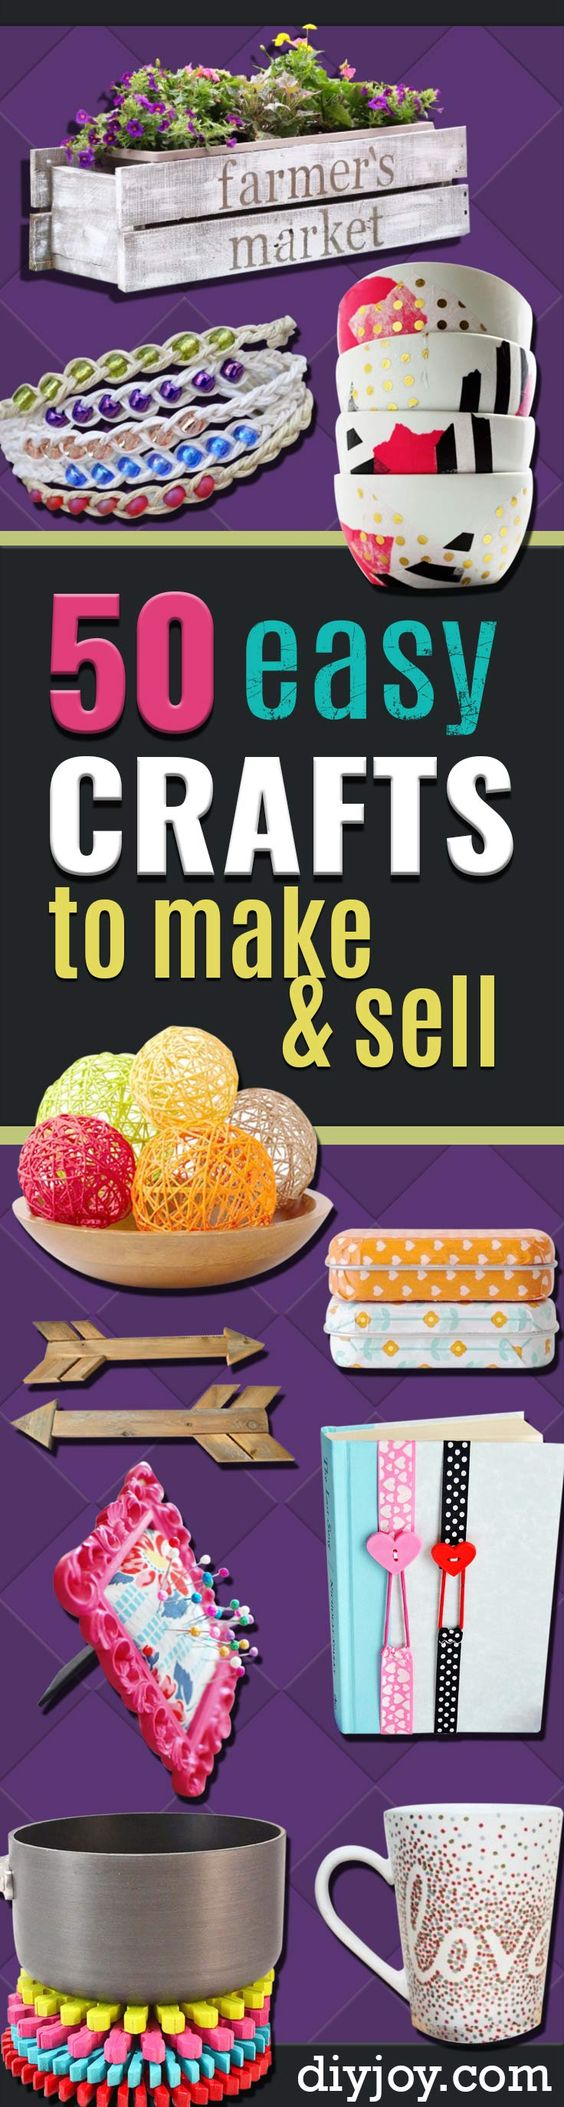 50 Easy Crafts to Make and Sell | Homemade, Make and sell ...